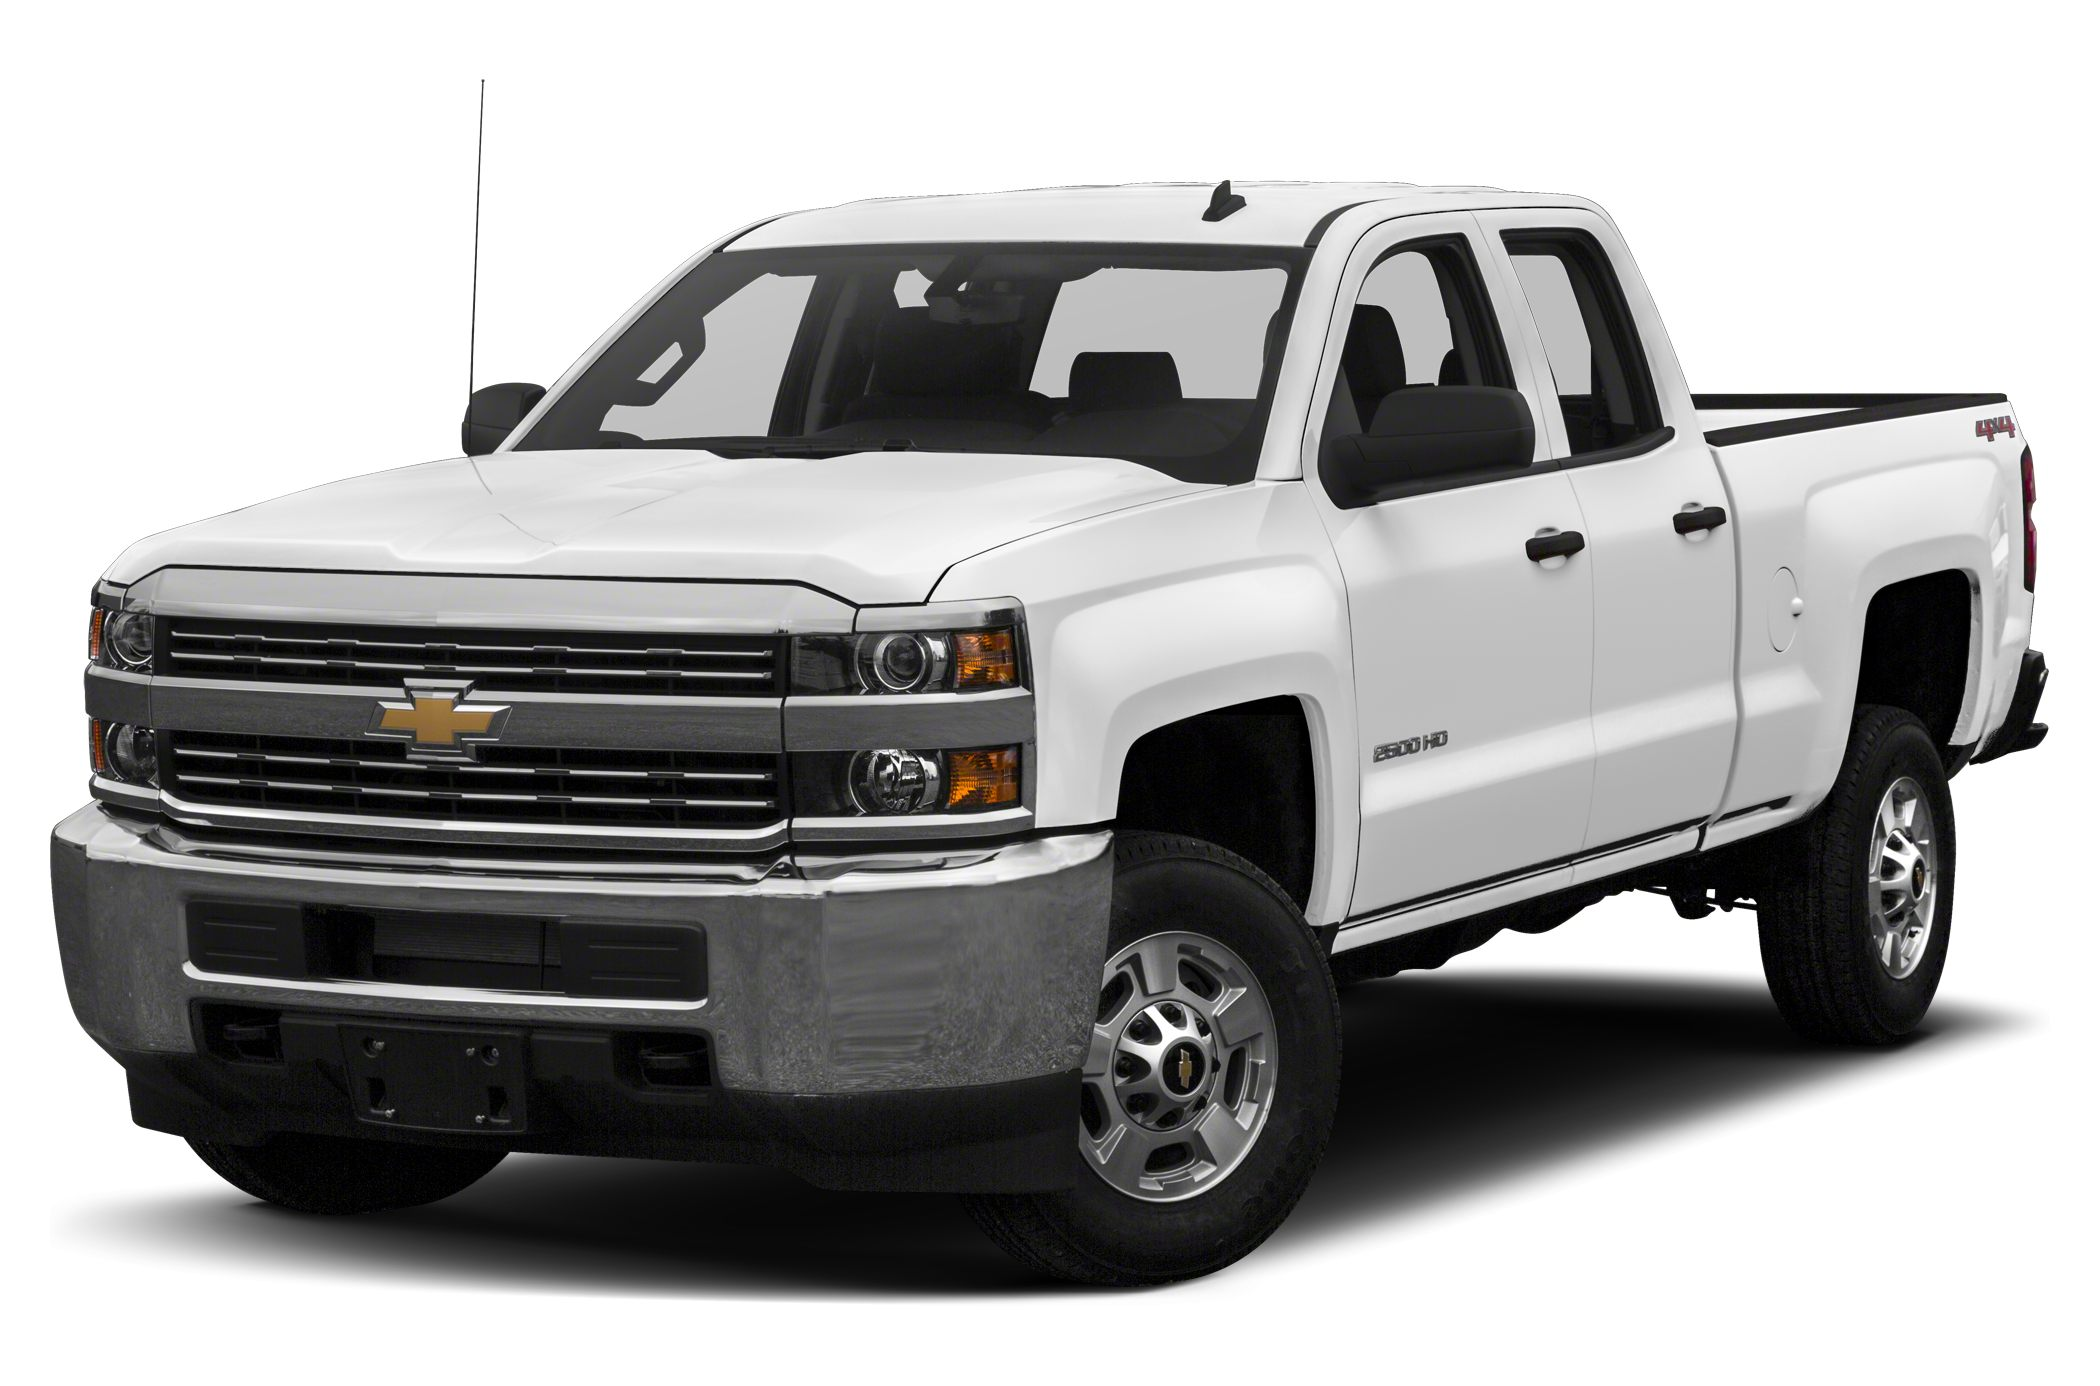 2015 Chevrolet Silverado 2500 LT Crew Cab Pickup for sale in Andover for $43,750 with 0 miles